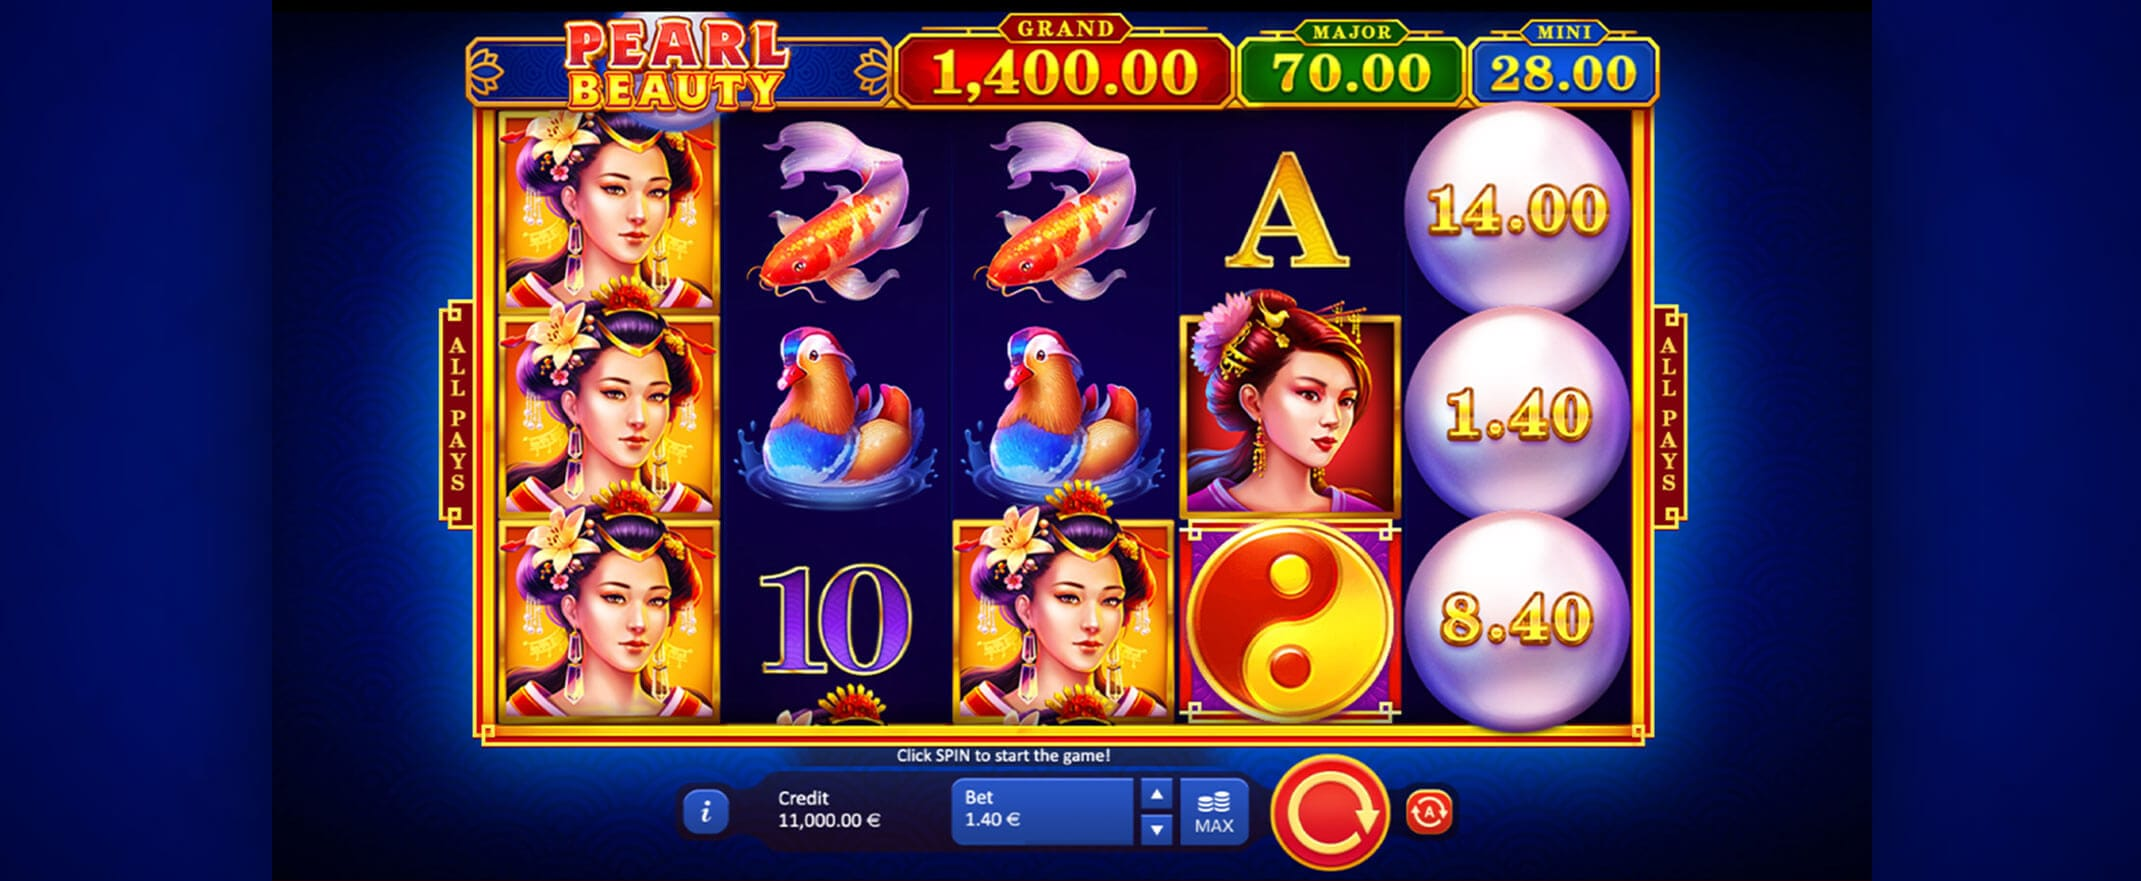 Pearl Beauty Hold and Win Slot Game